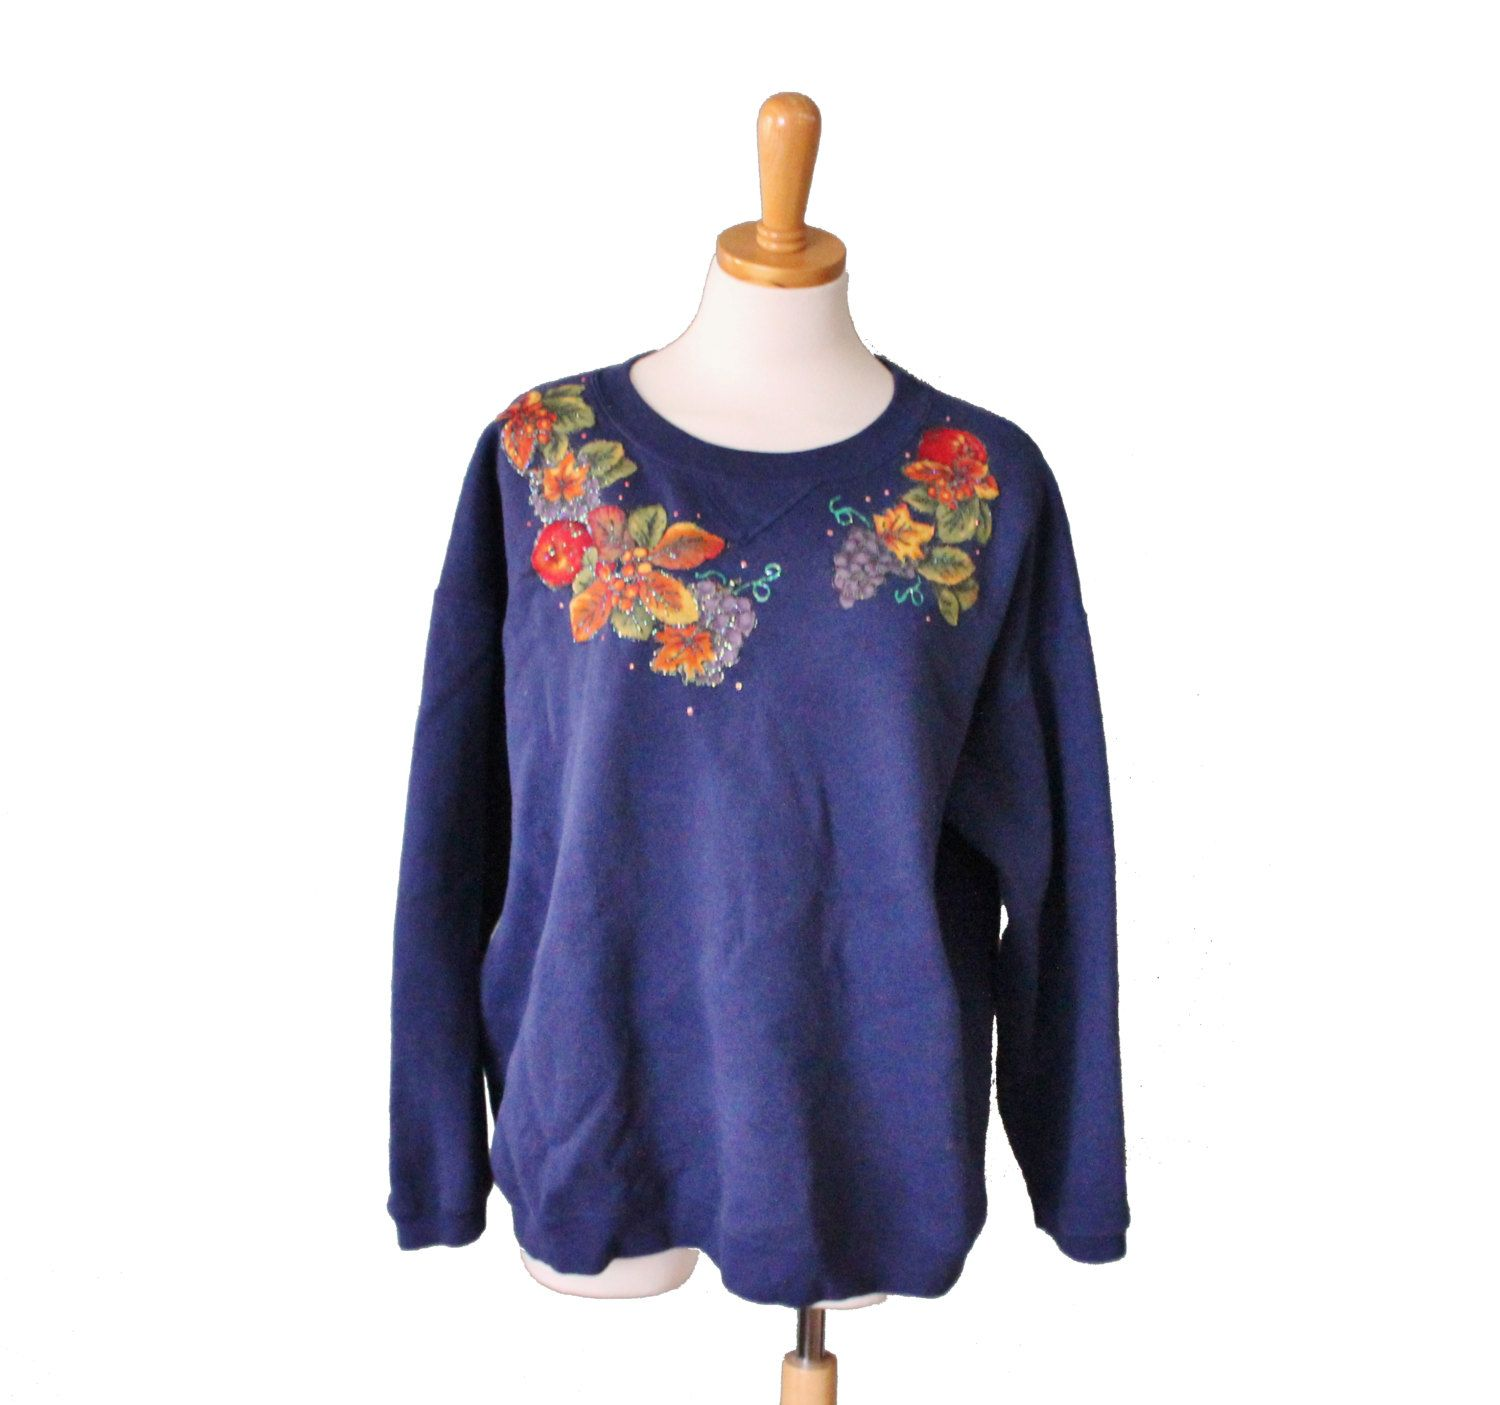 Vintage 90s Navy Blue Glitter Harvest Leaves Iron On Sweatshirt - Women XL 2XL - Autumn Fall Thanksgiving, Hanes by bluebutterflyvintage on Etsy